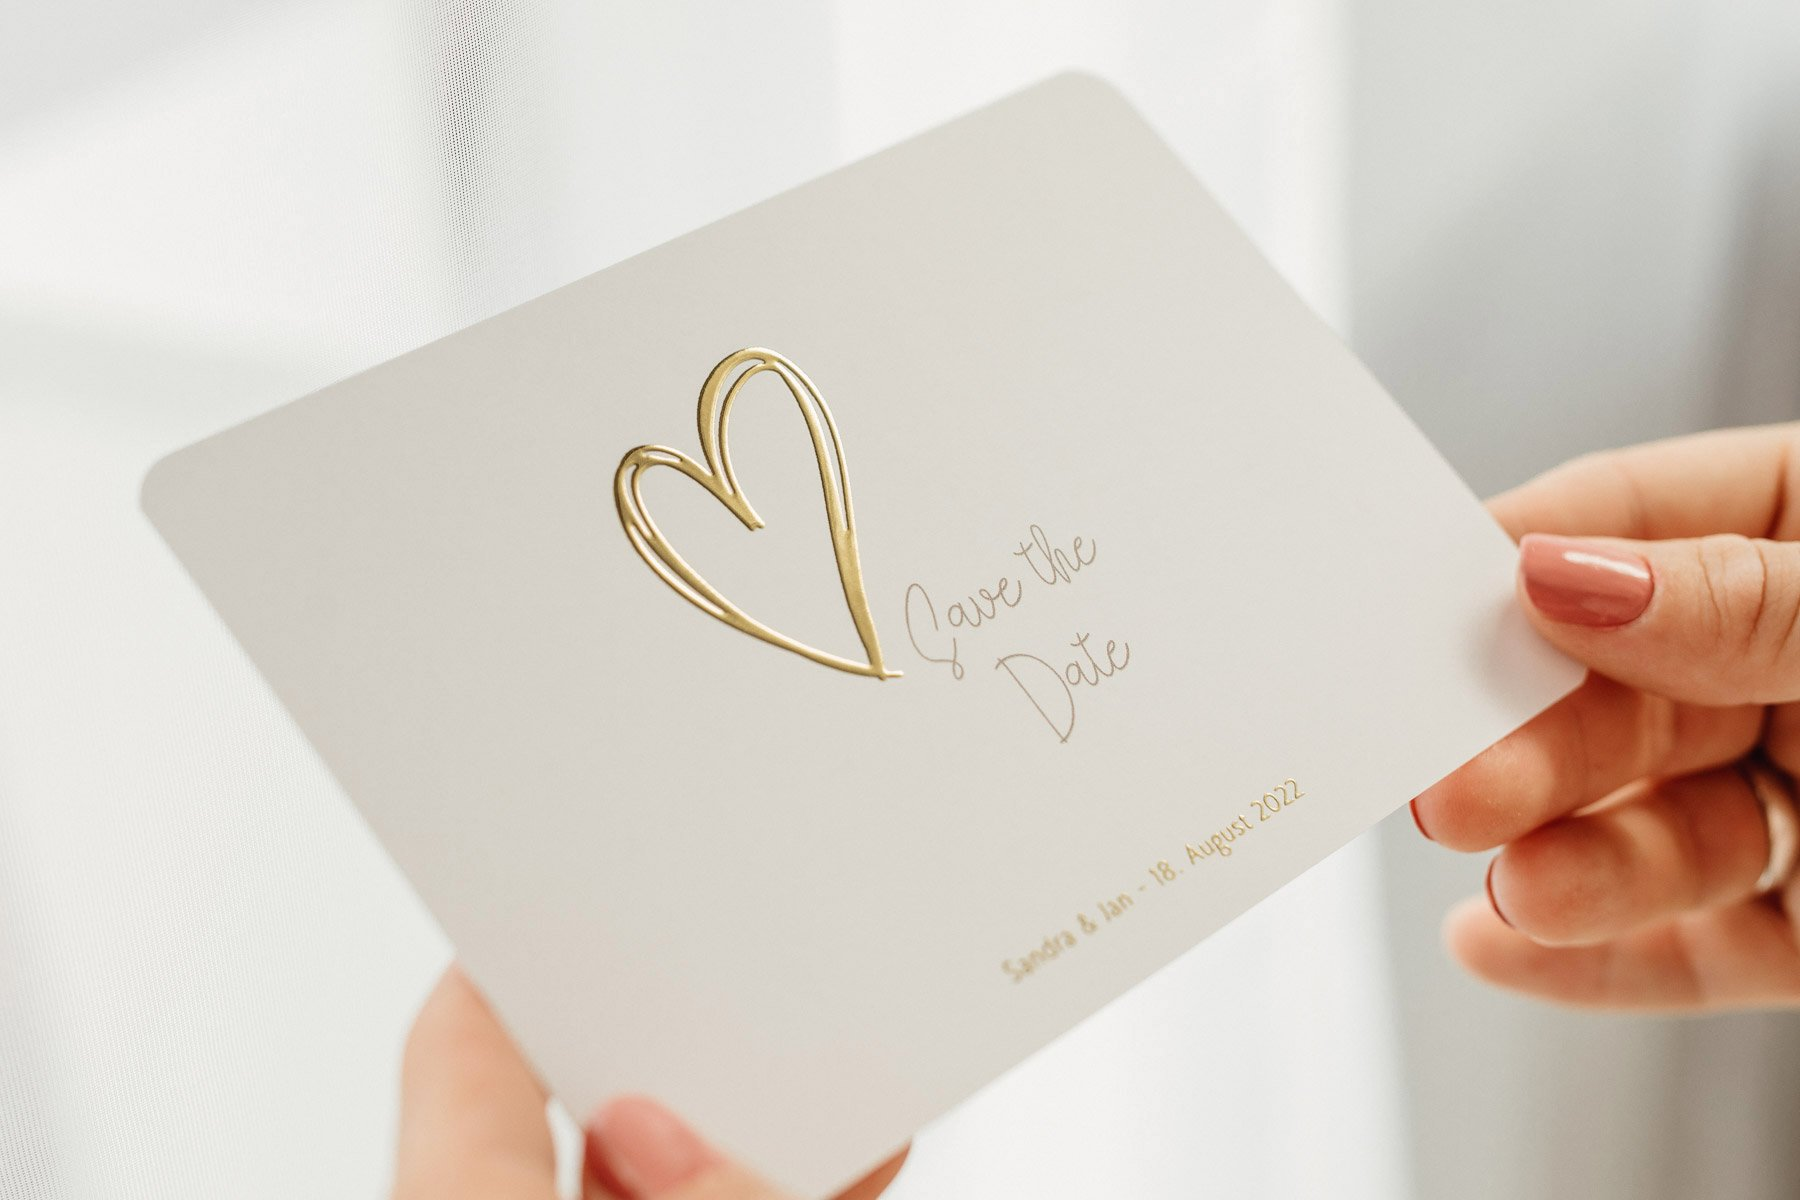 1633150643 882 Tips and ideas for your save the date cards - Tips and ideas for your save-the-date cards